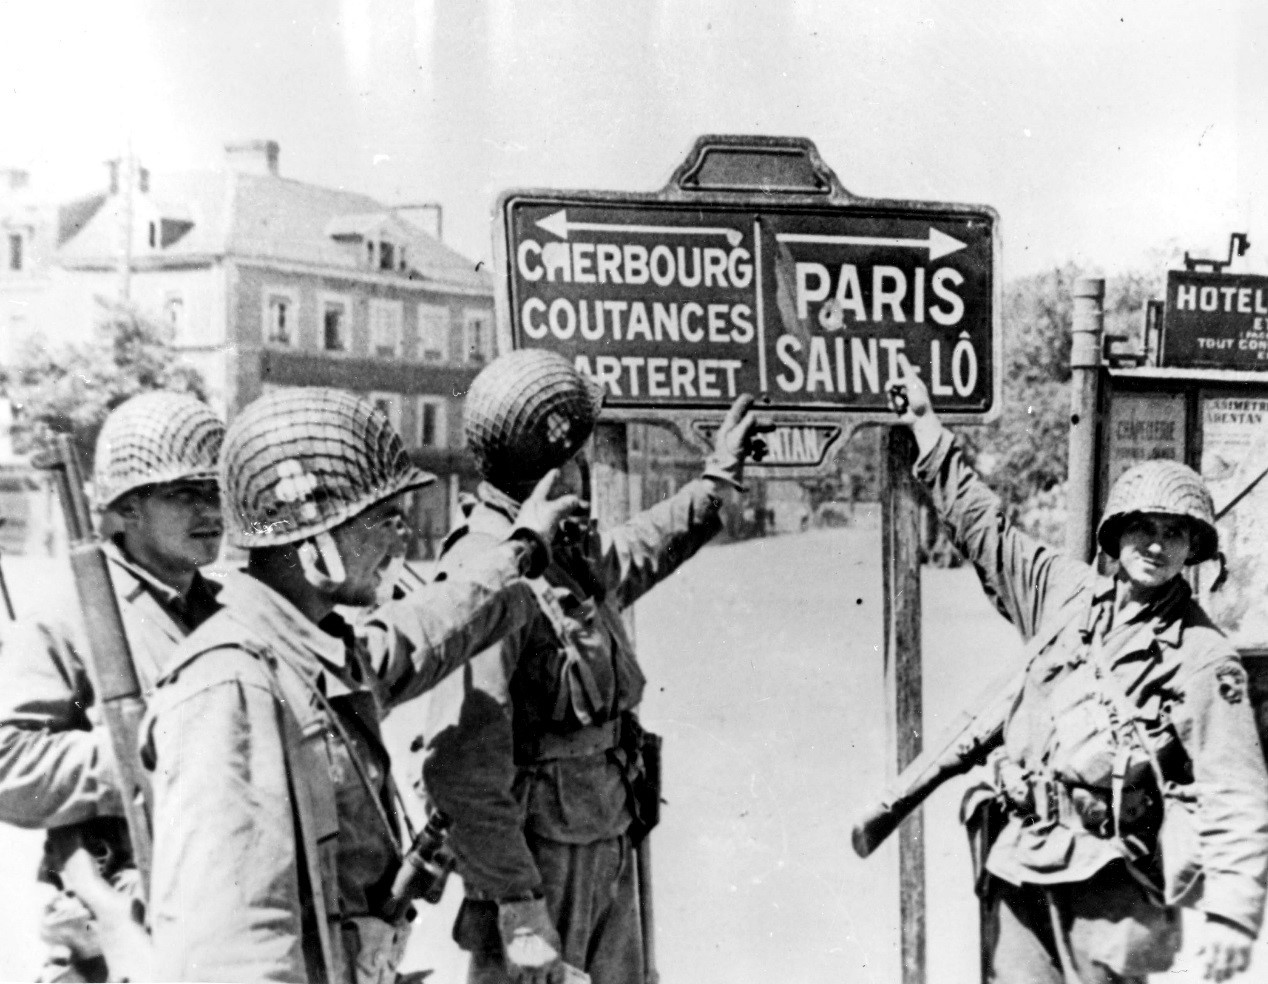 The liberation of Paris by the Allies, 1944